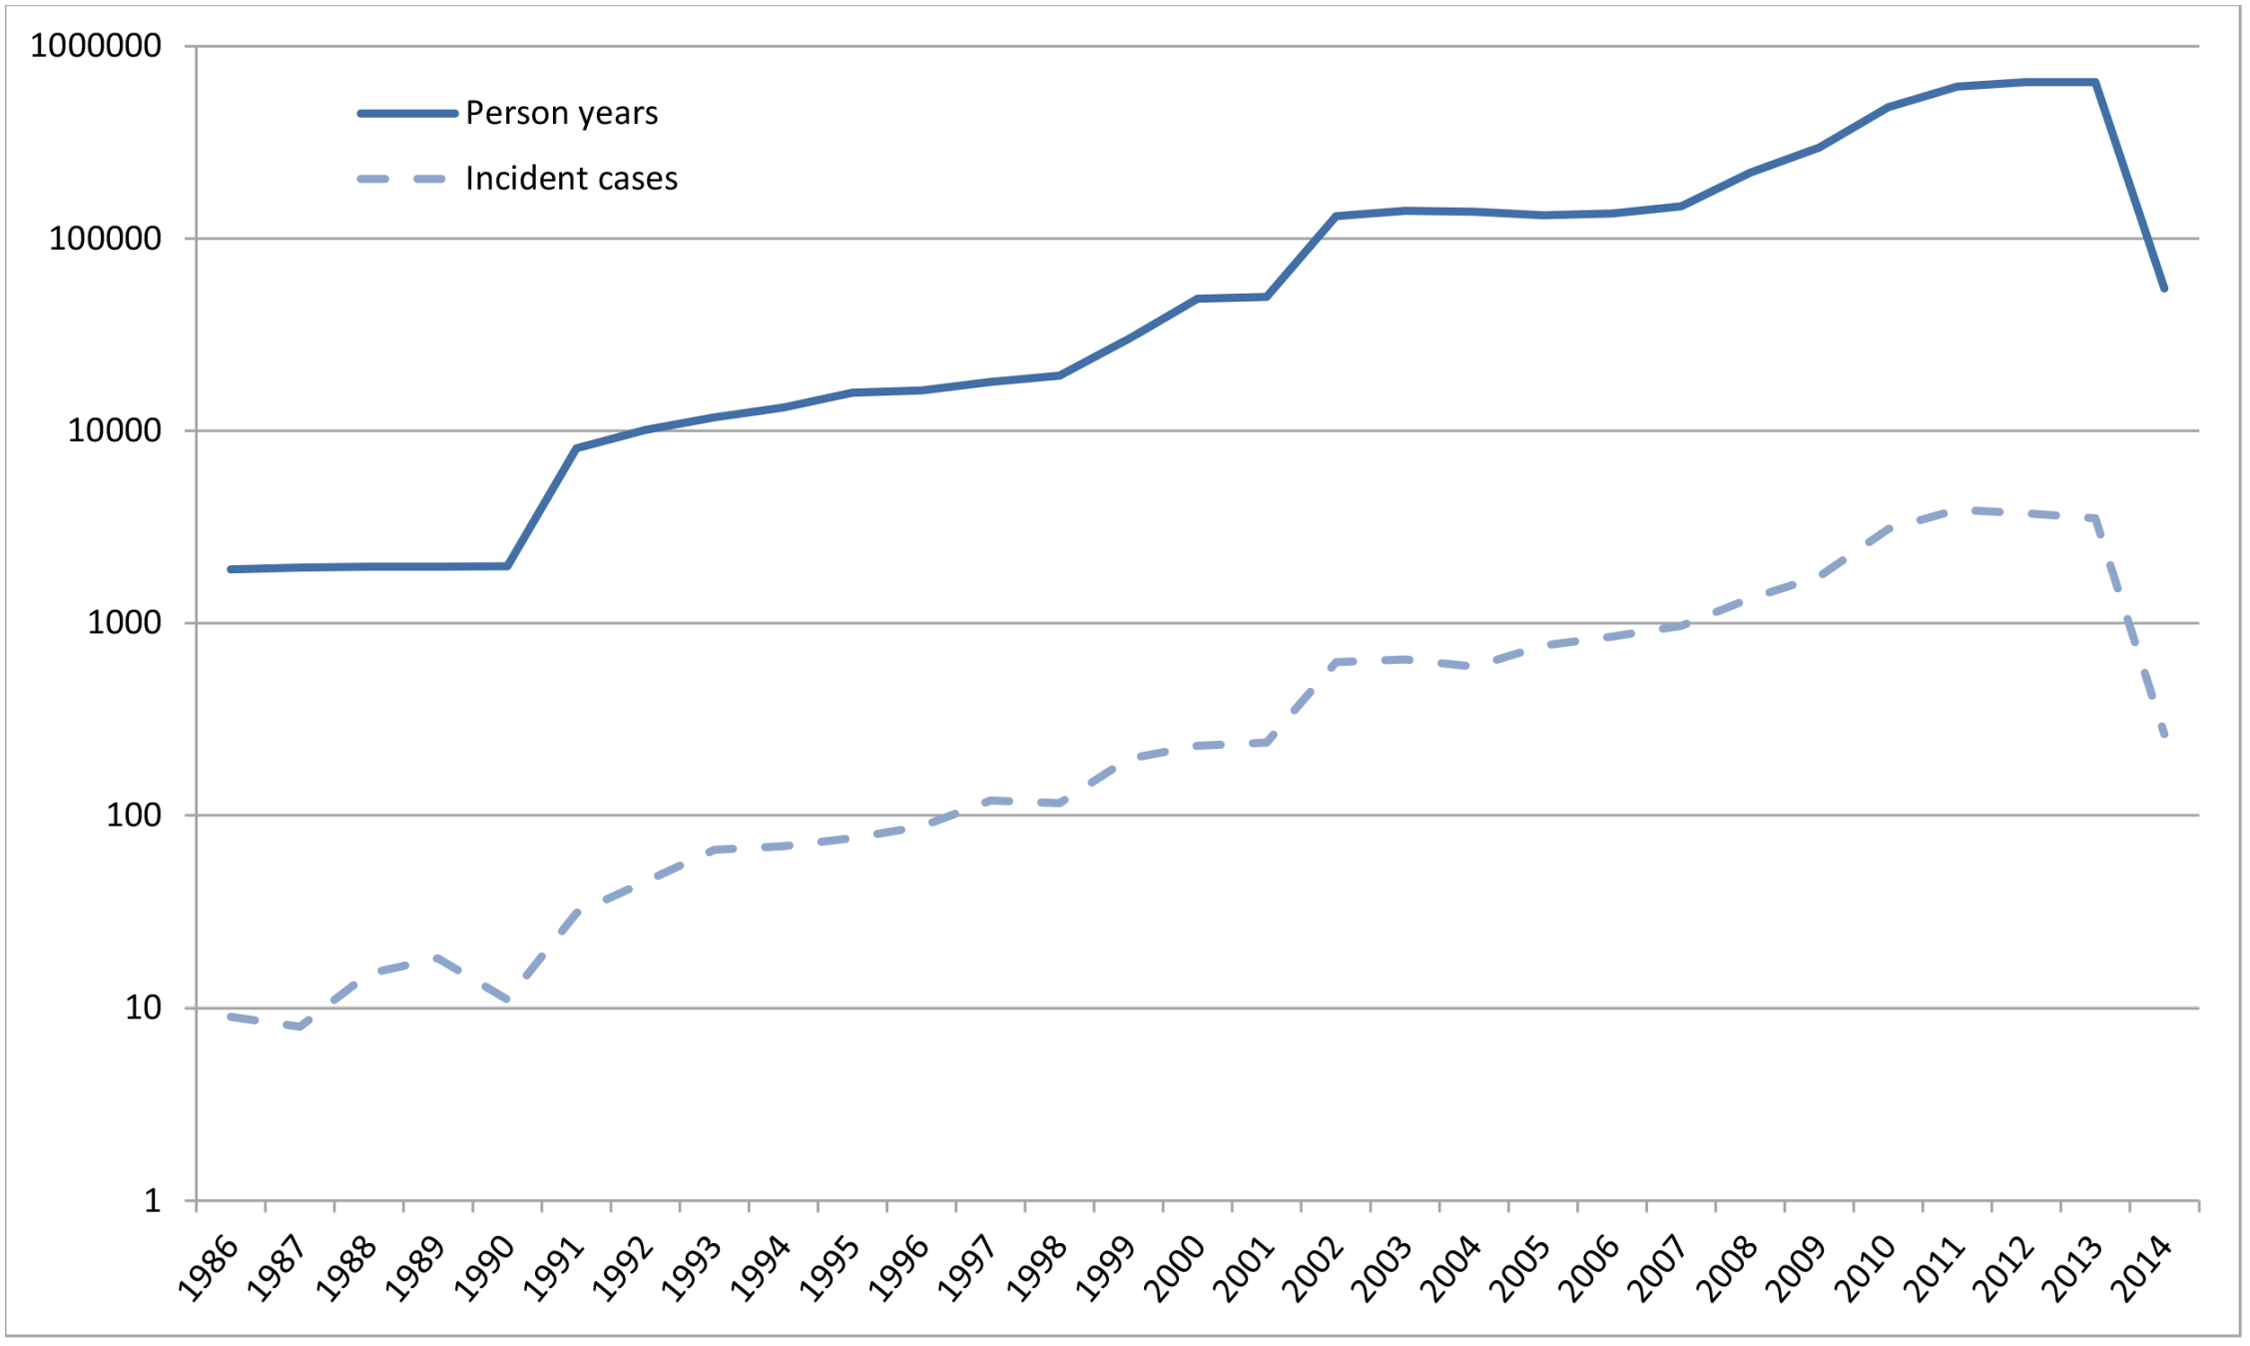 Absolute number of person-years at risk and incident dementia cases per calendar year (logarithmic <i>y</i>-axis).